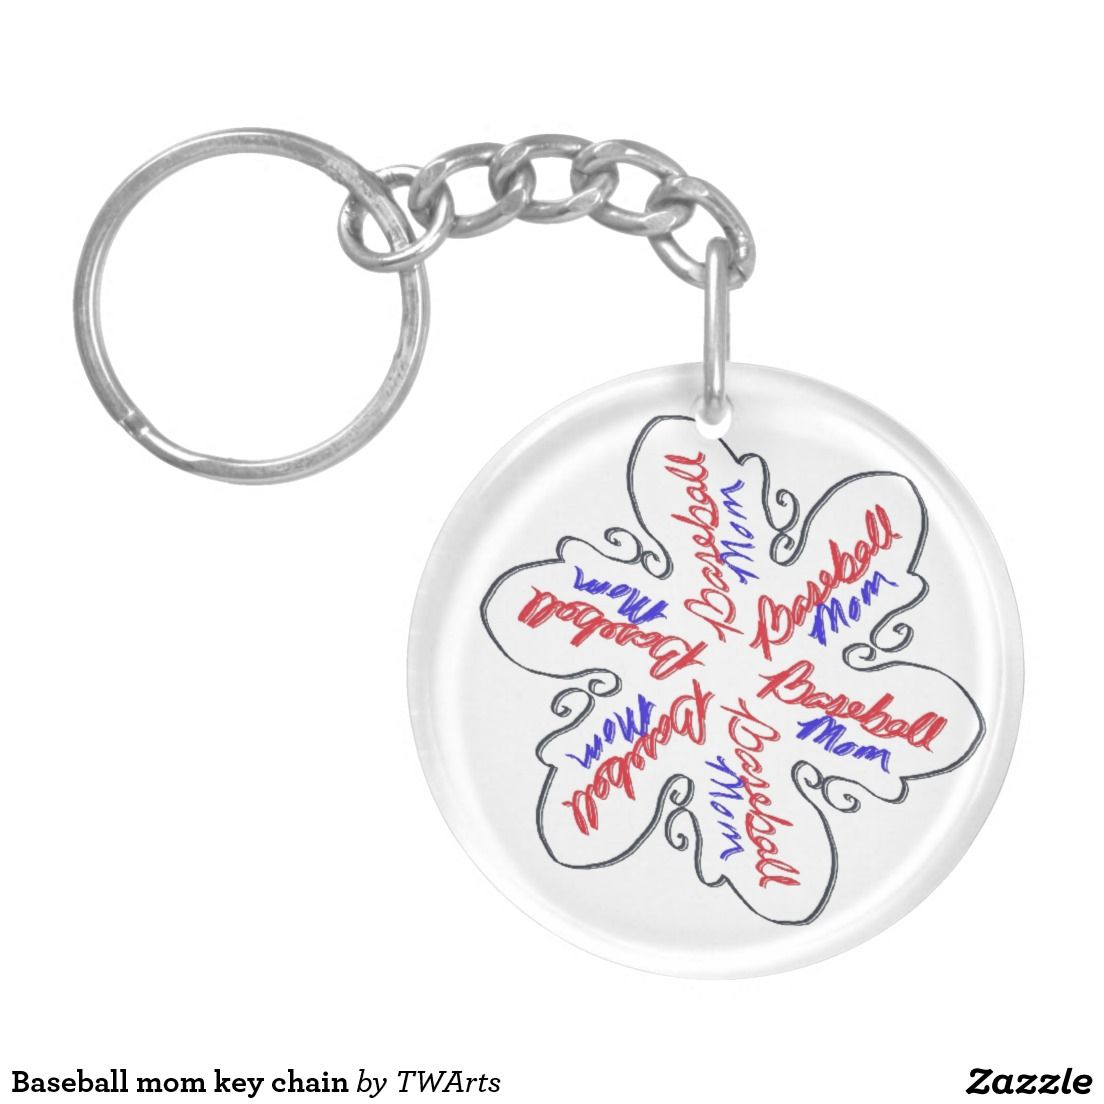 Baseball mom key chain